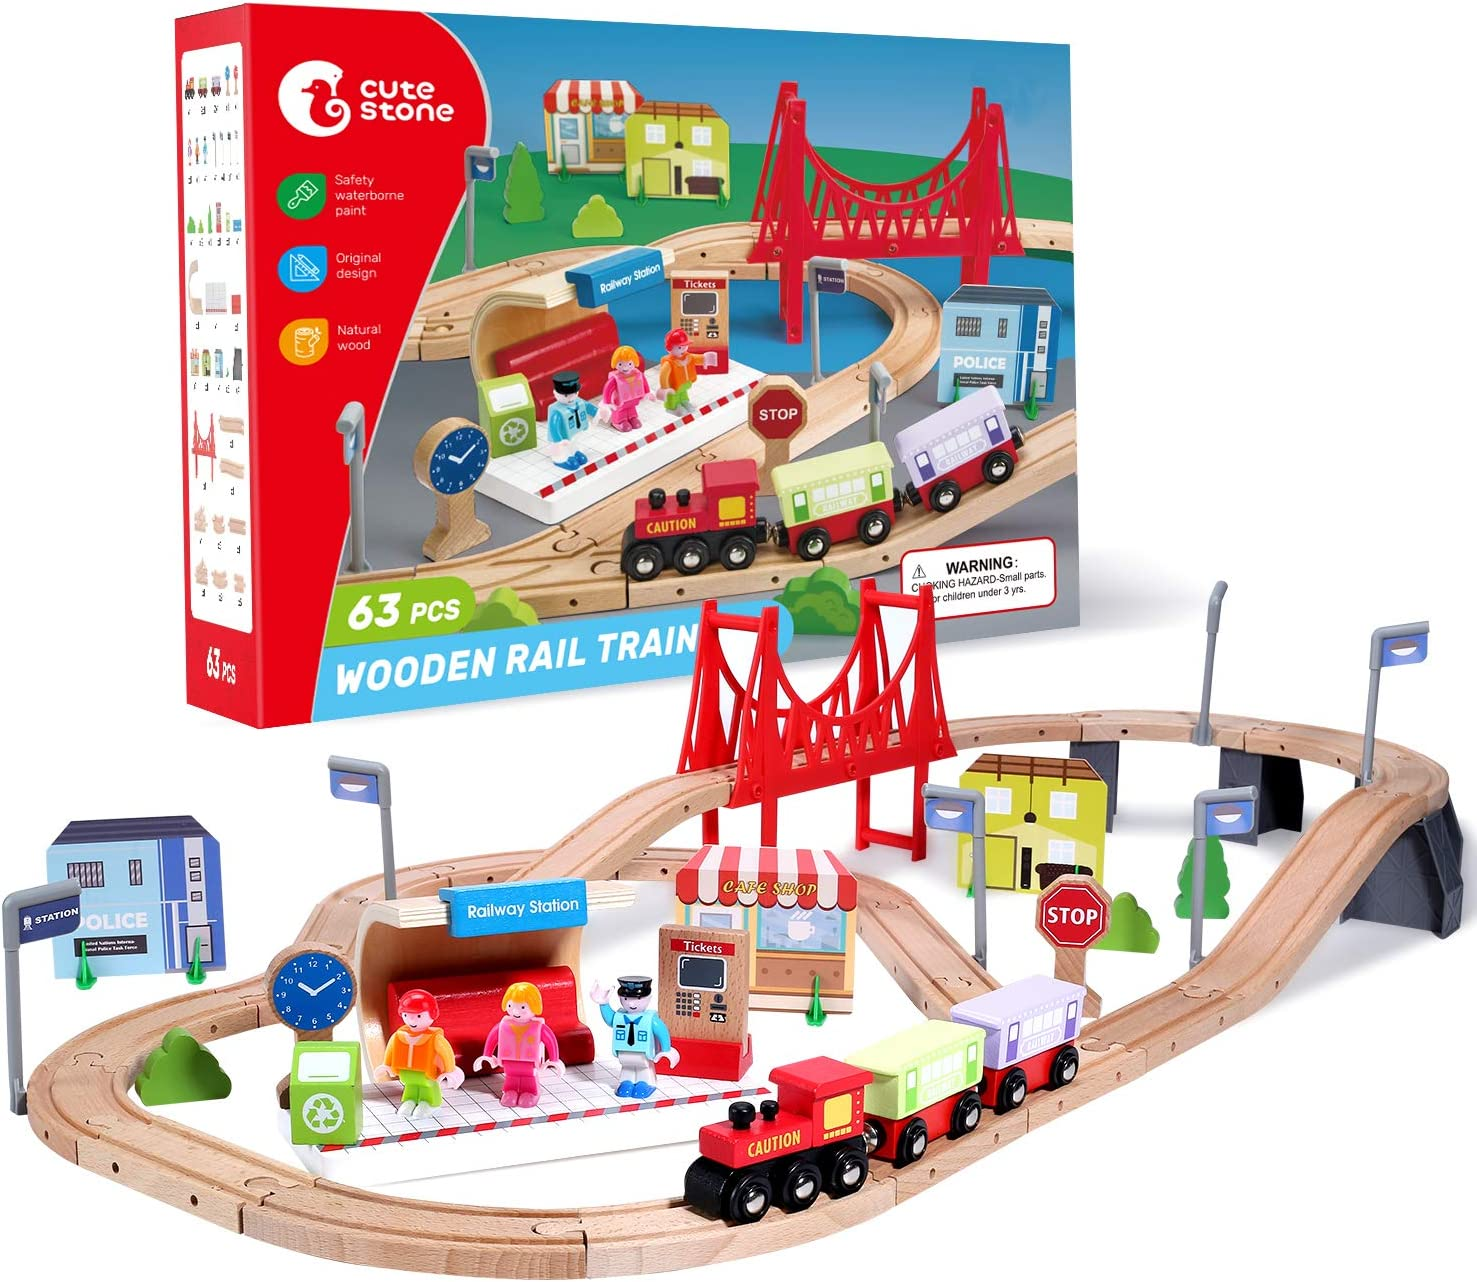 CUTE STONE 63 free Pcs Wooden Train for Tracks Kids Toddlers Set Choice